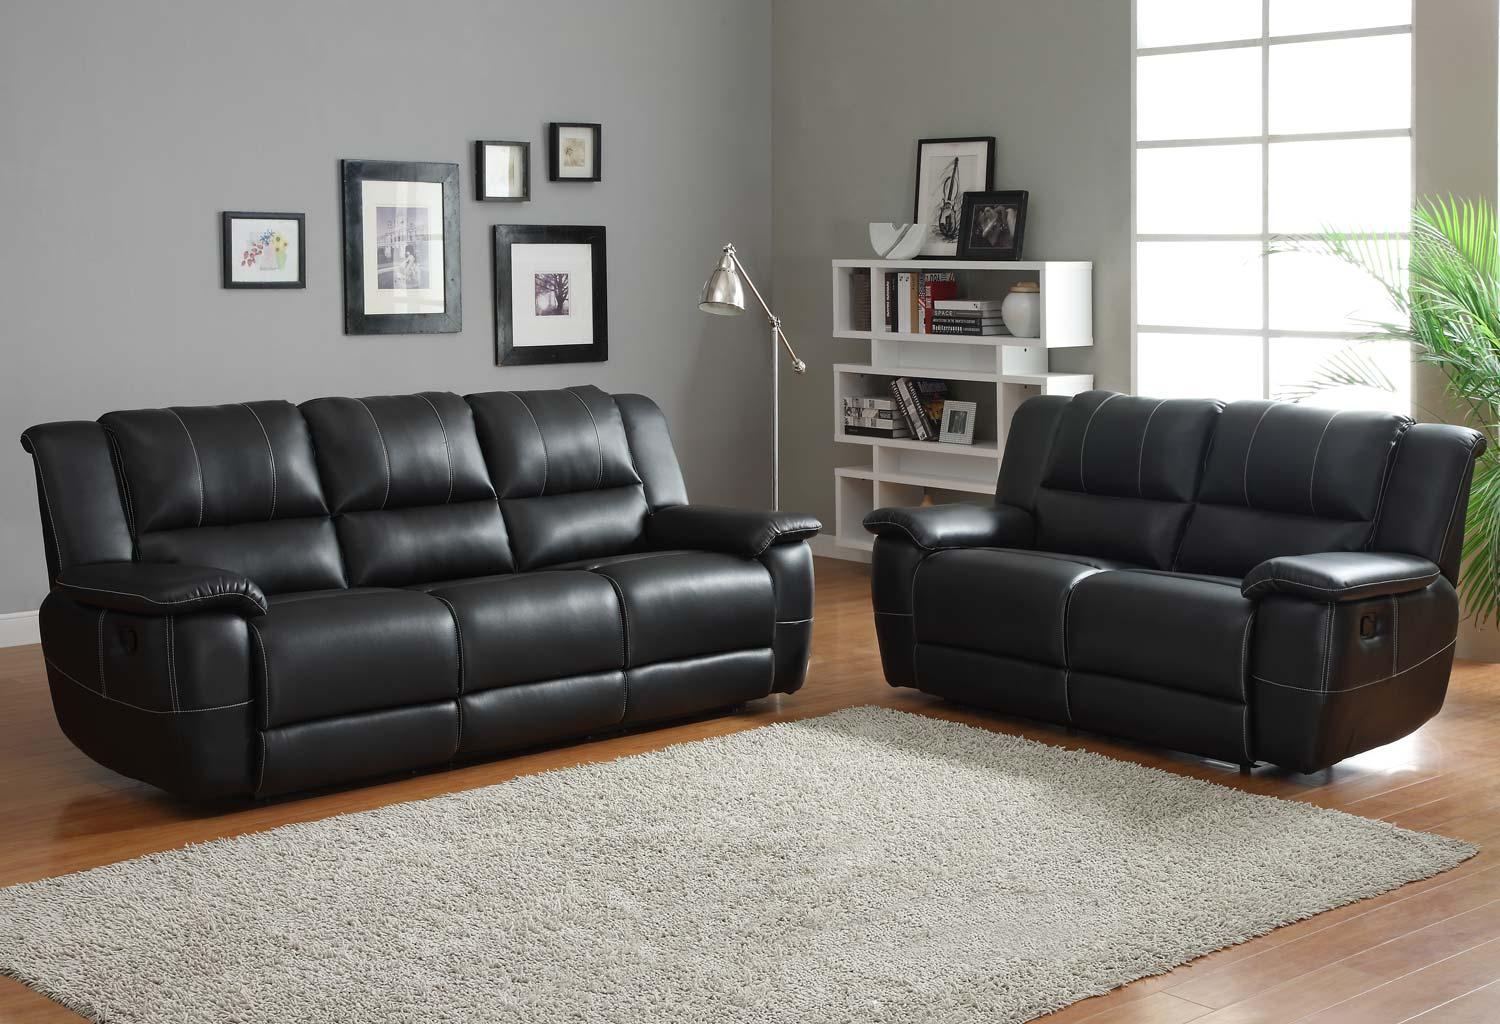 Homelegance Cantrell Reclining Sofa Set   Black   Bonded Leather Match